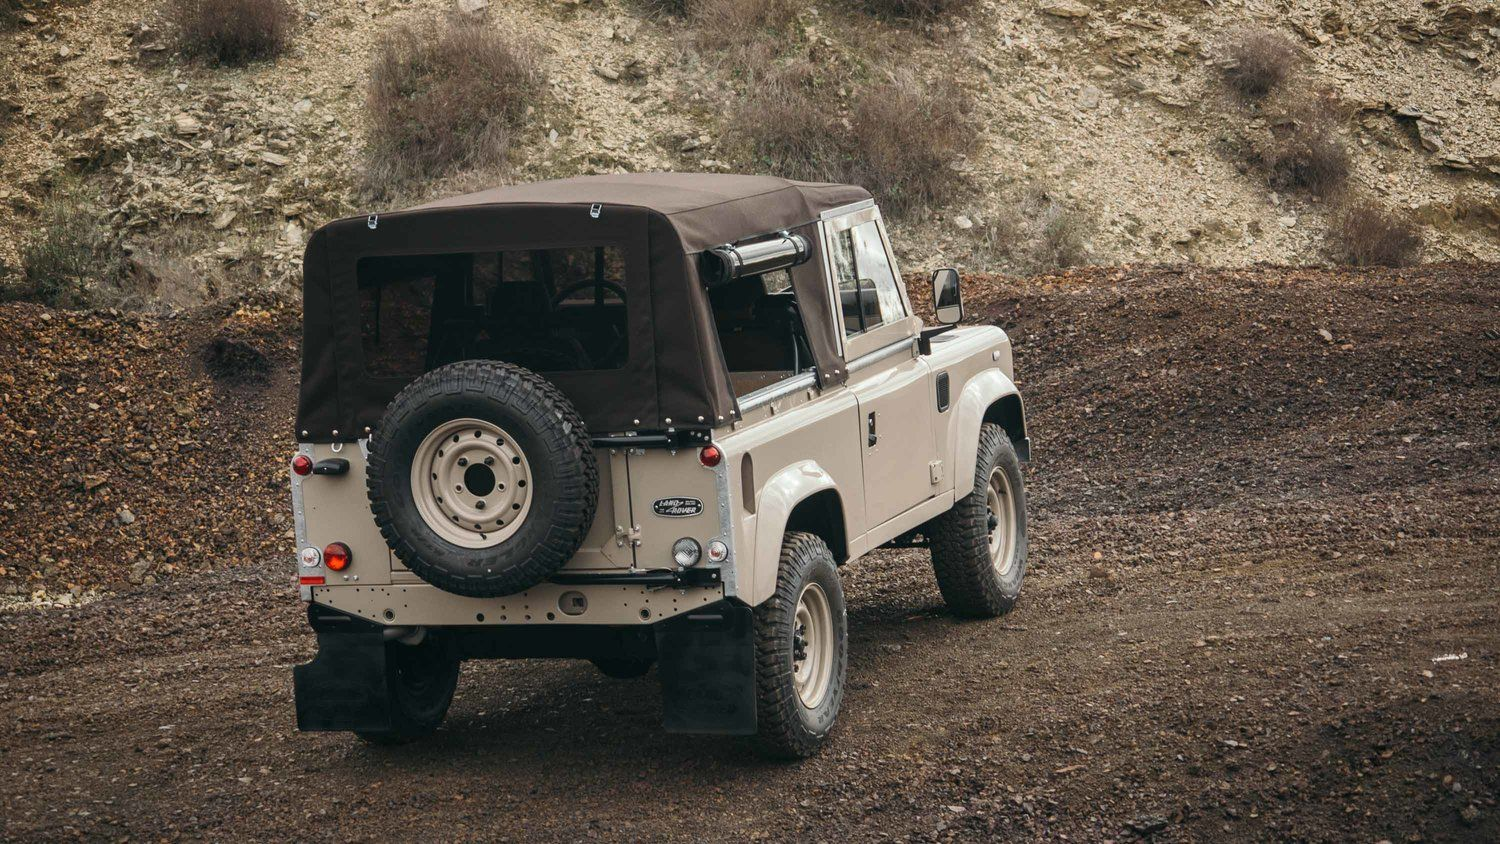 1997 land rover defender 90 land rover defender 90 st pinterest defender 90 land rover defender and land rovers